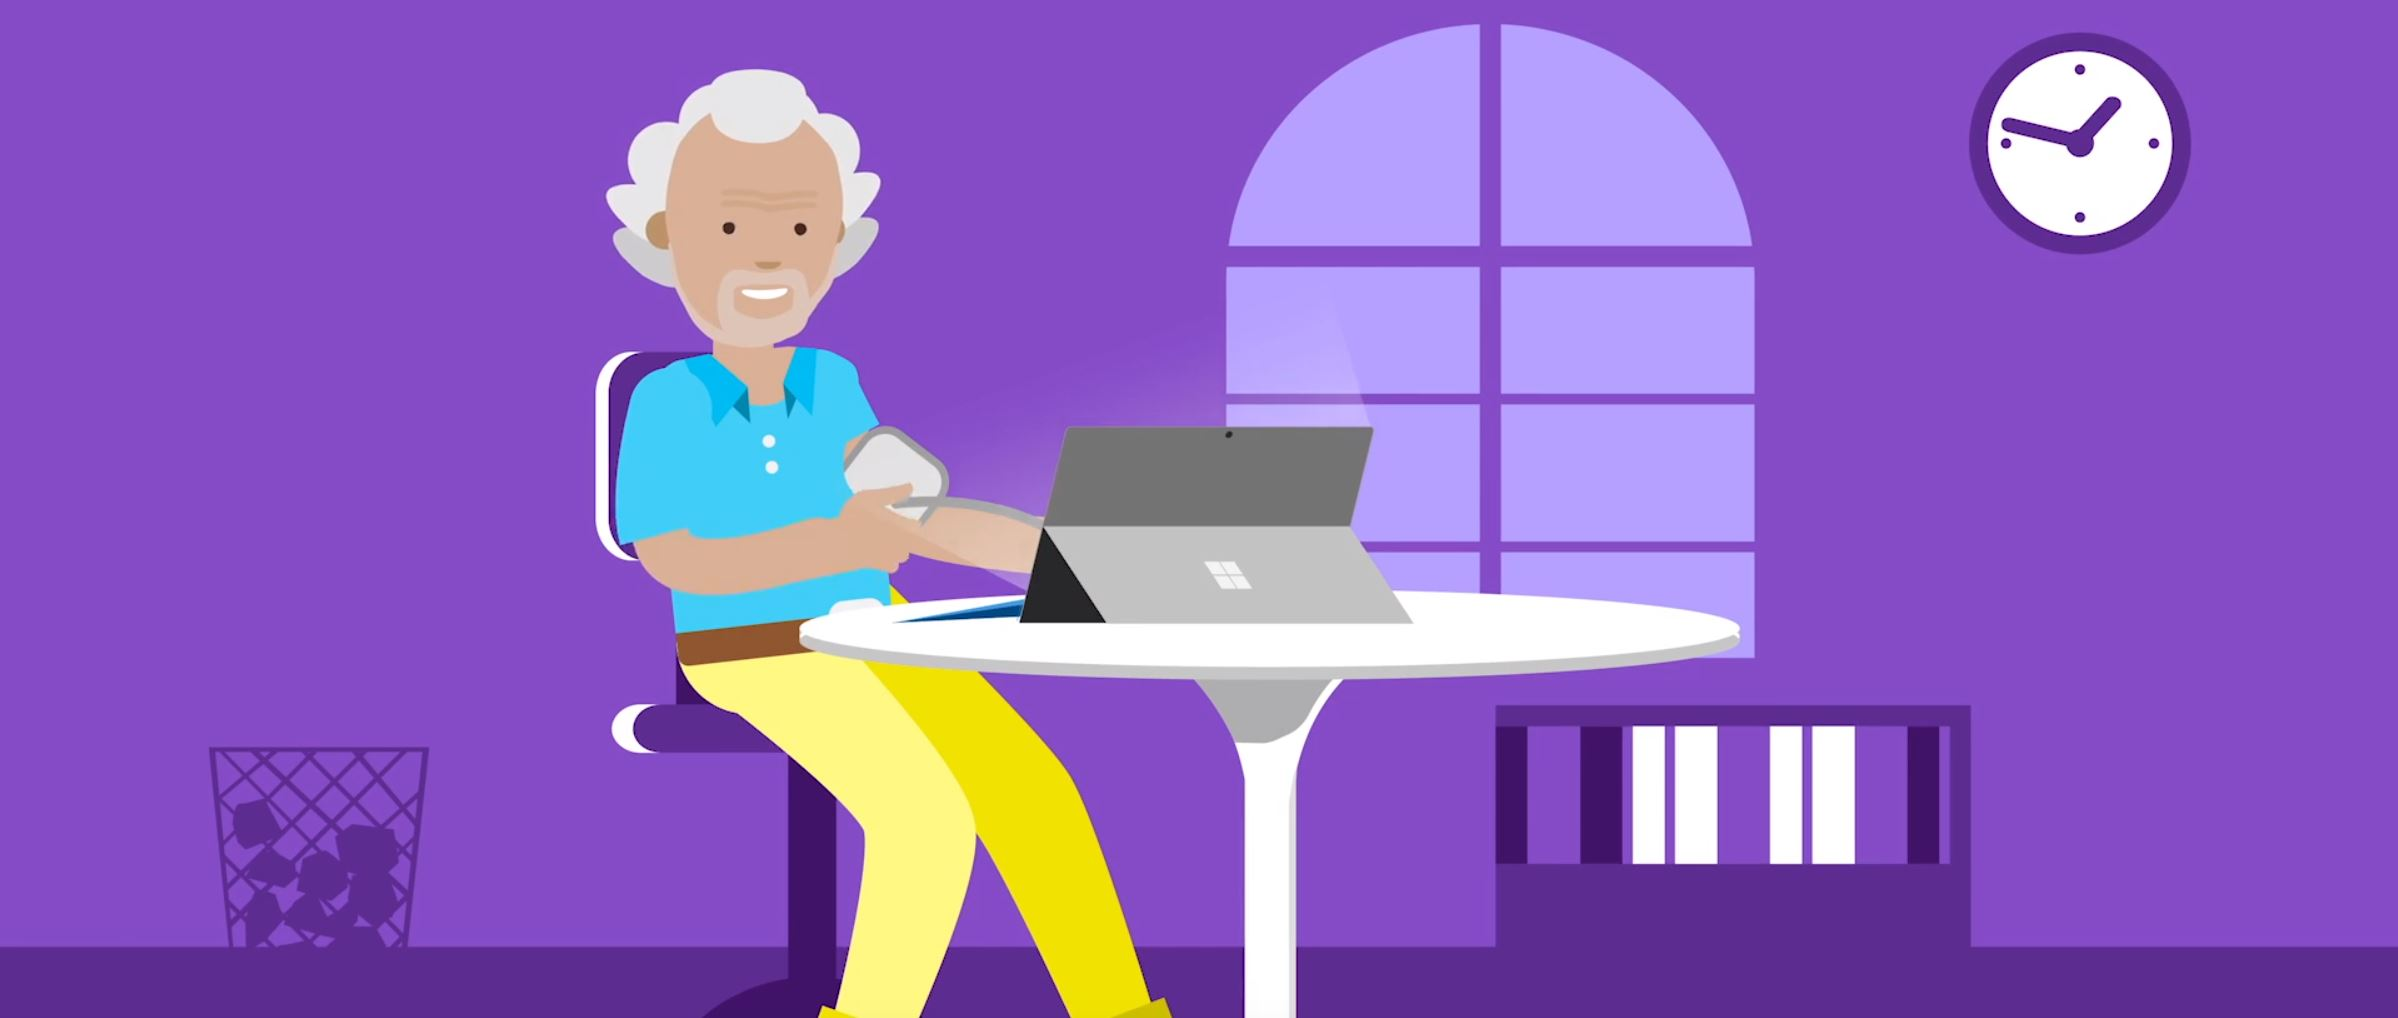 2D character animation image 5 for Microsoft Innovation - health project